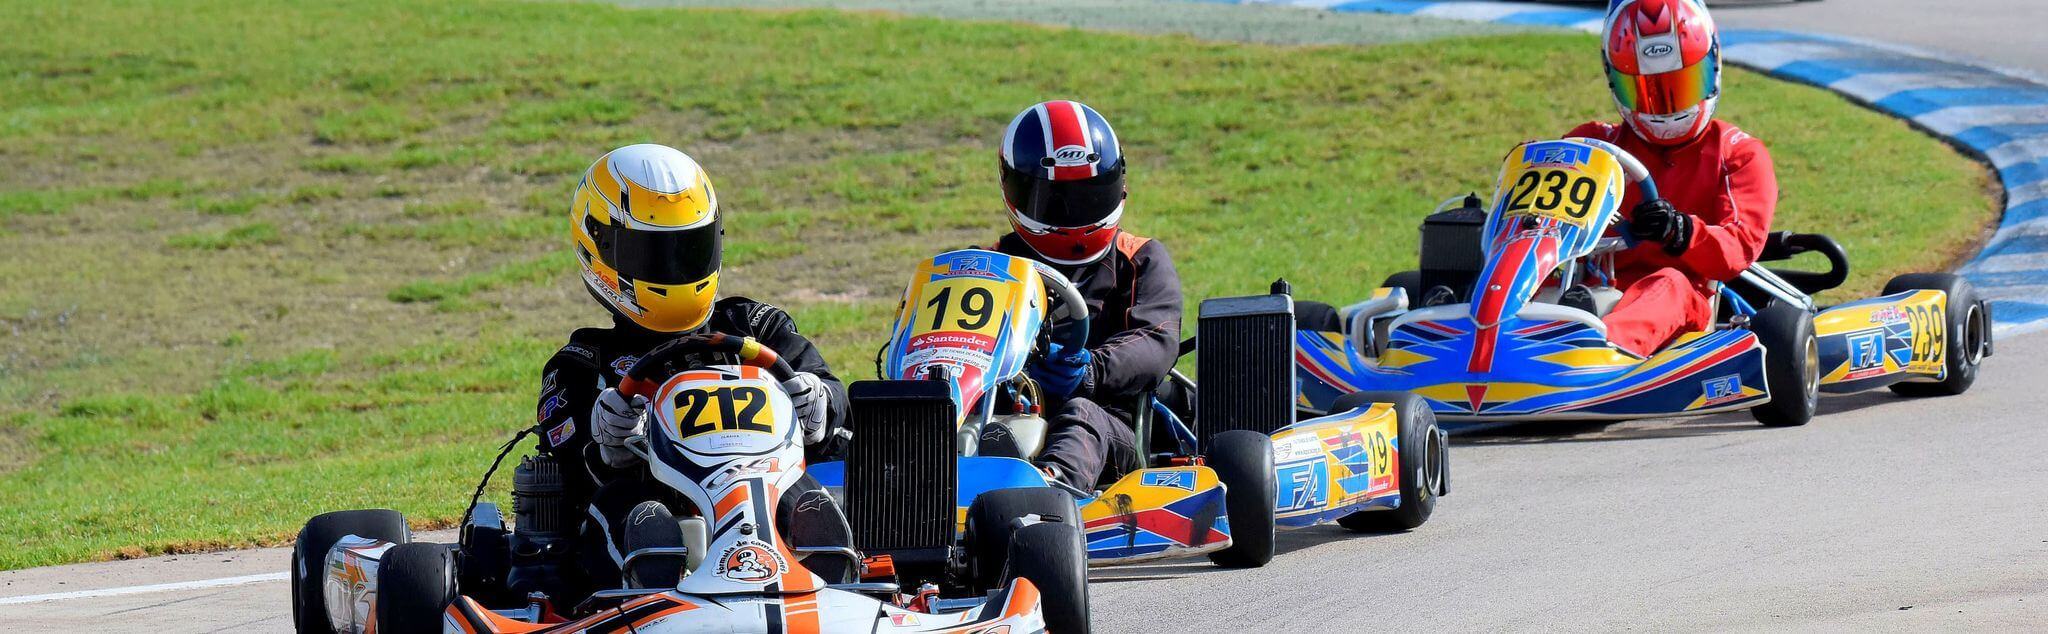 Karting in United Kingdom